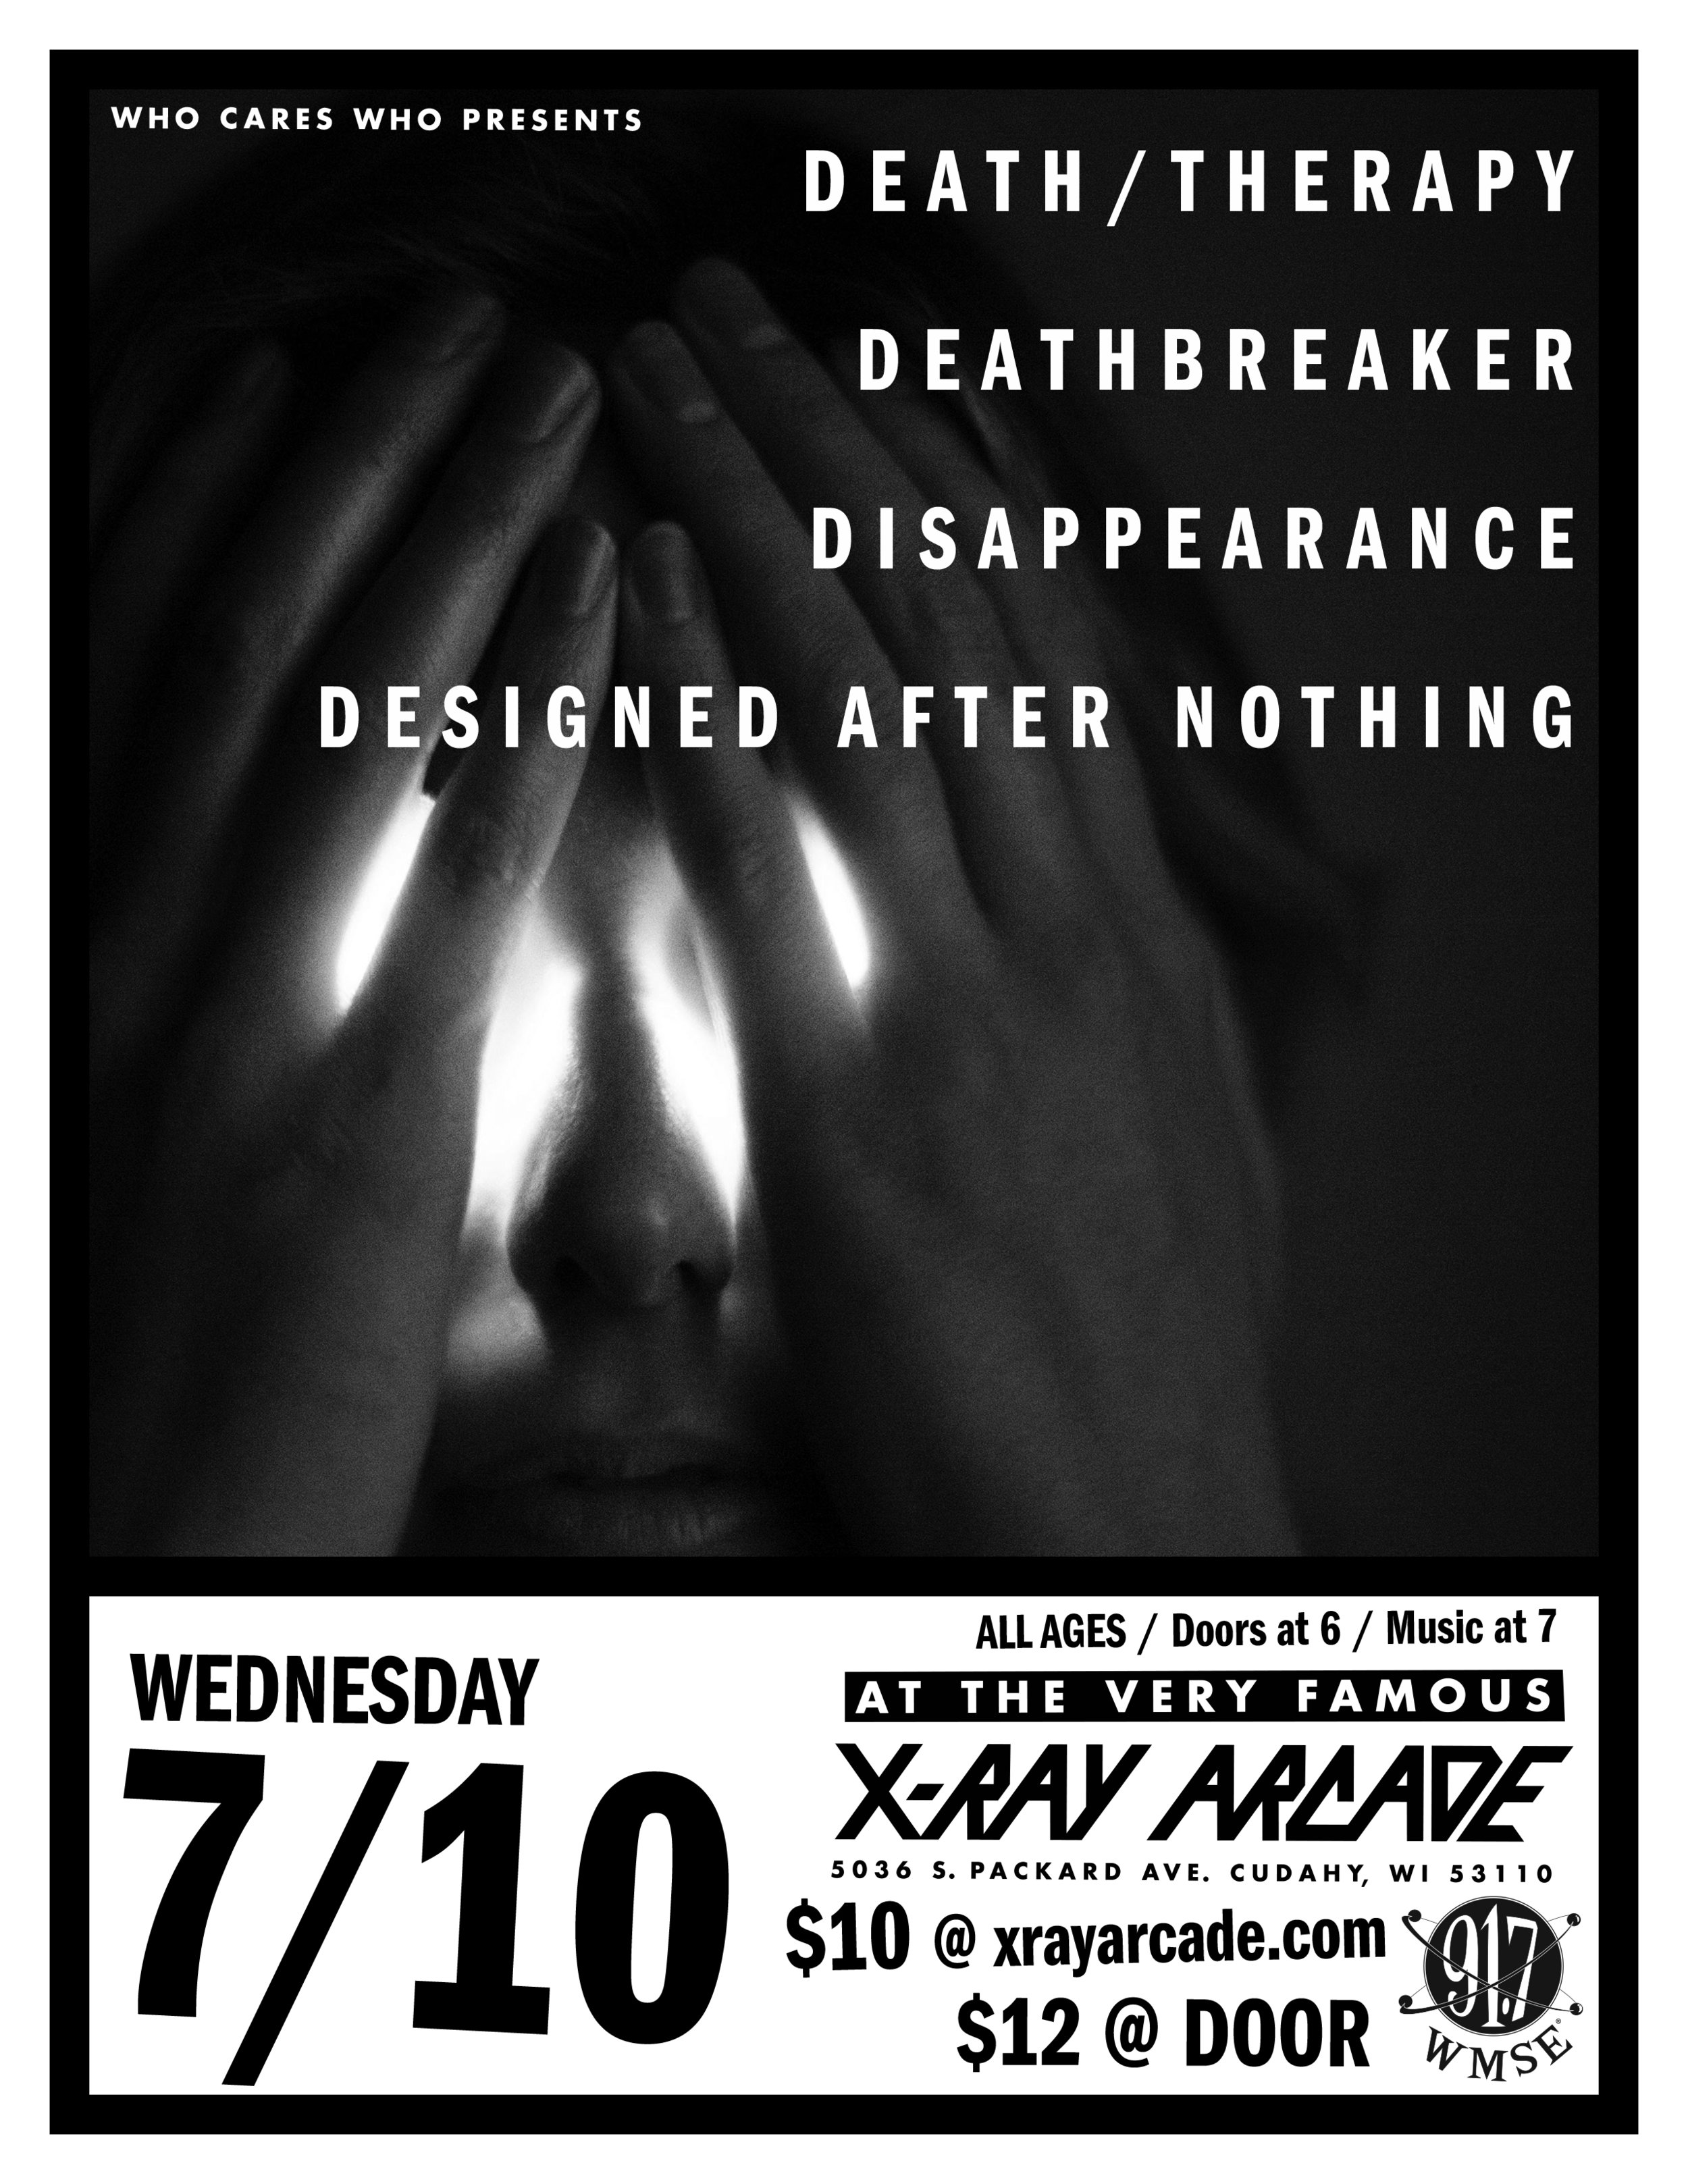 190710 DeathTherapy.jpg